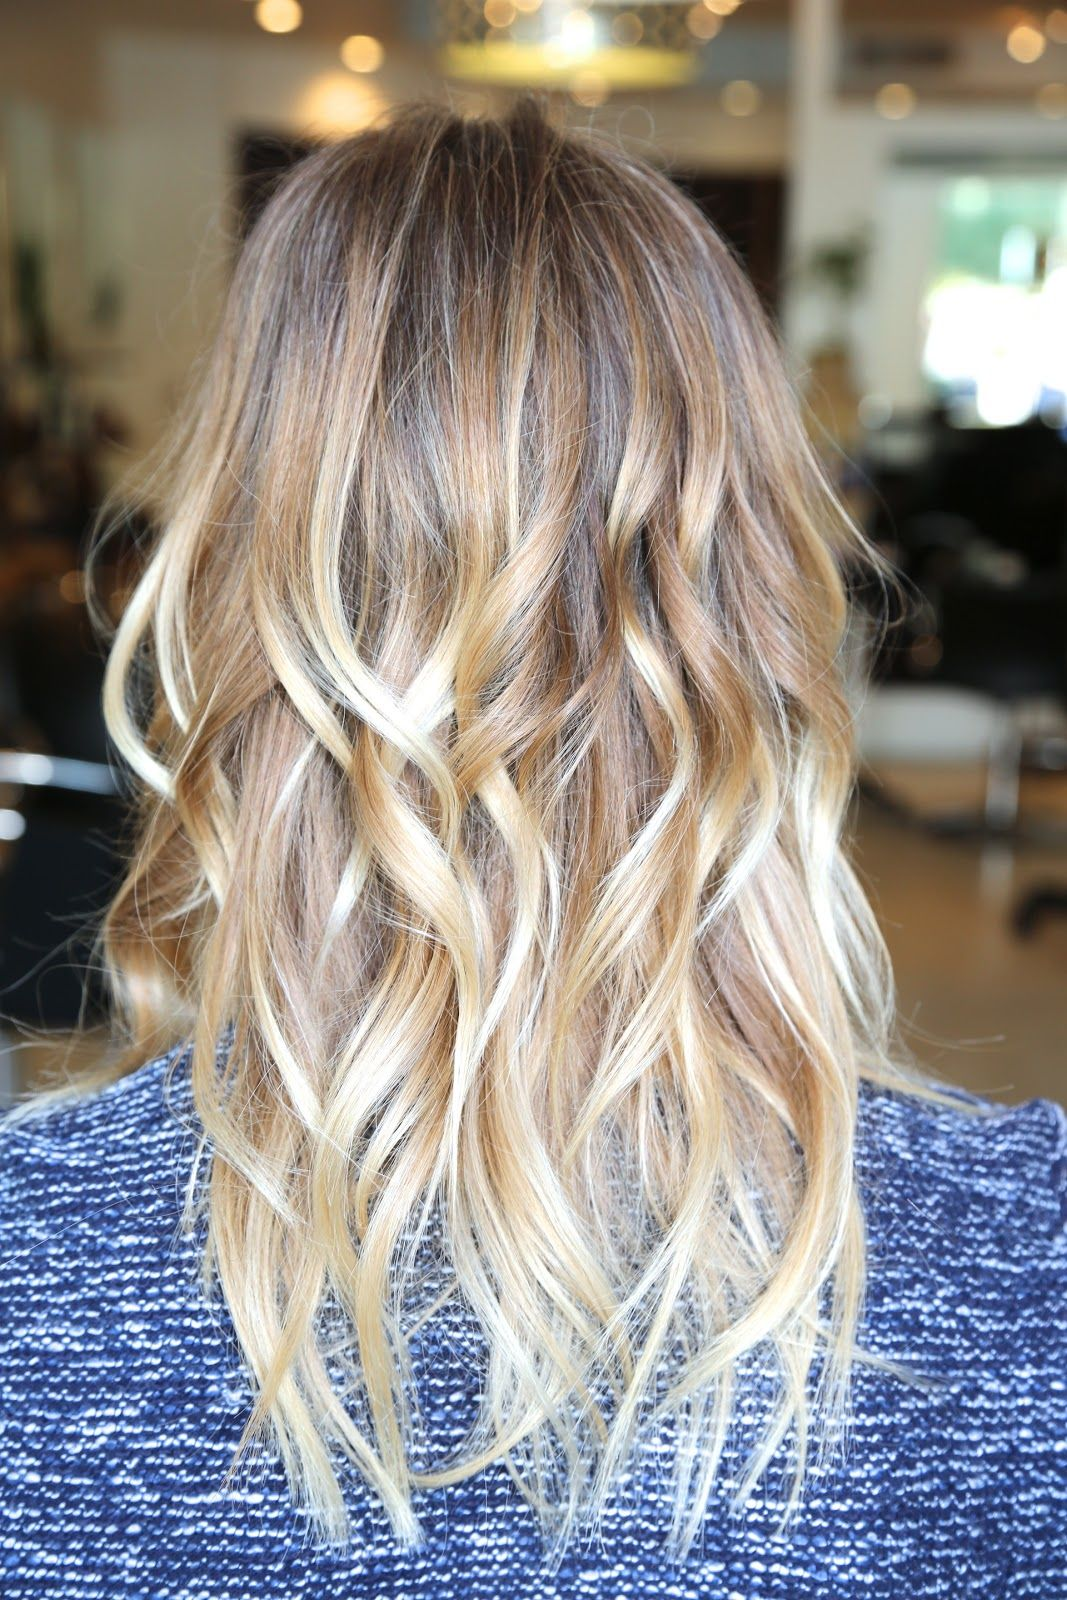 Light Blonde Ombre Going To Do This A Friend Summer For An Easy Low Maintanence Color